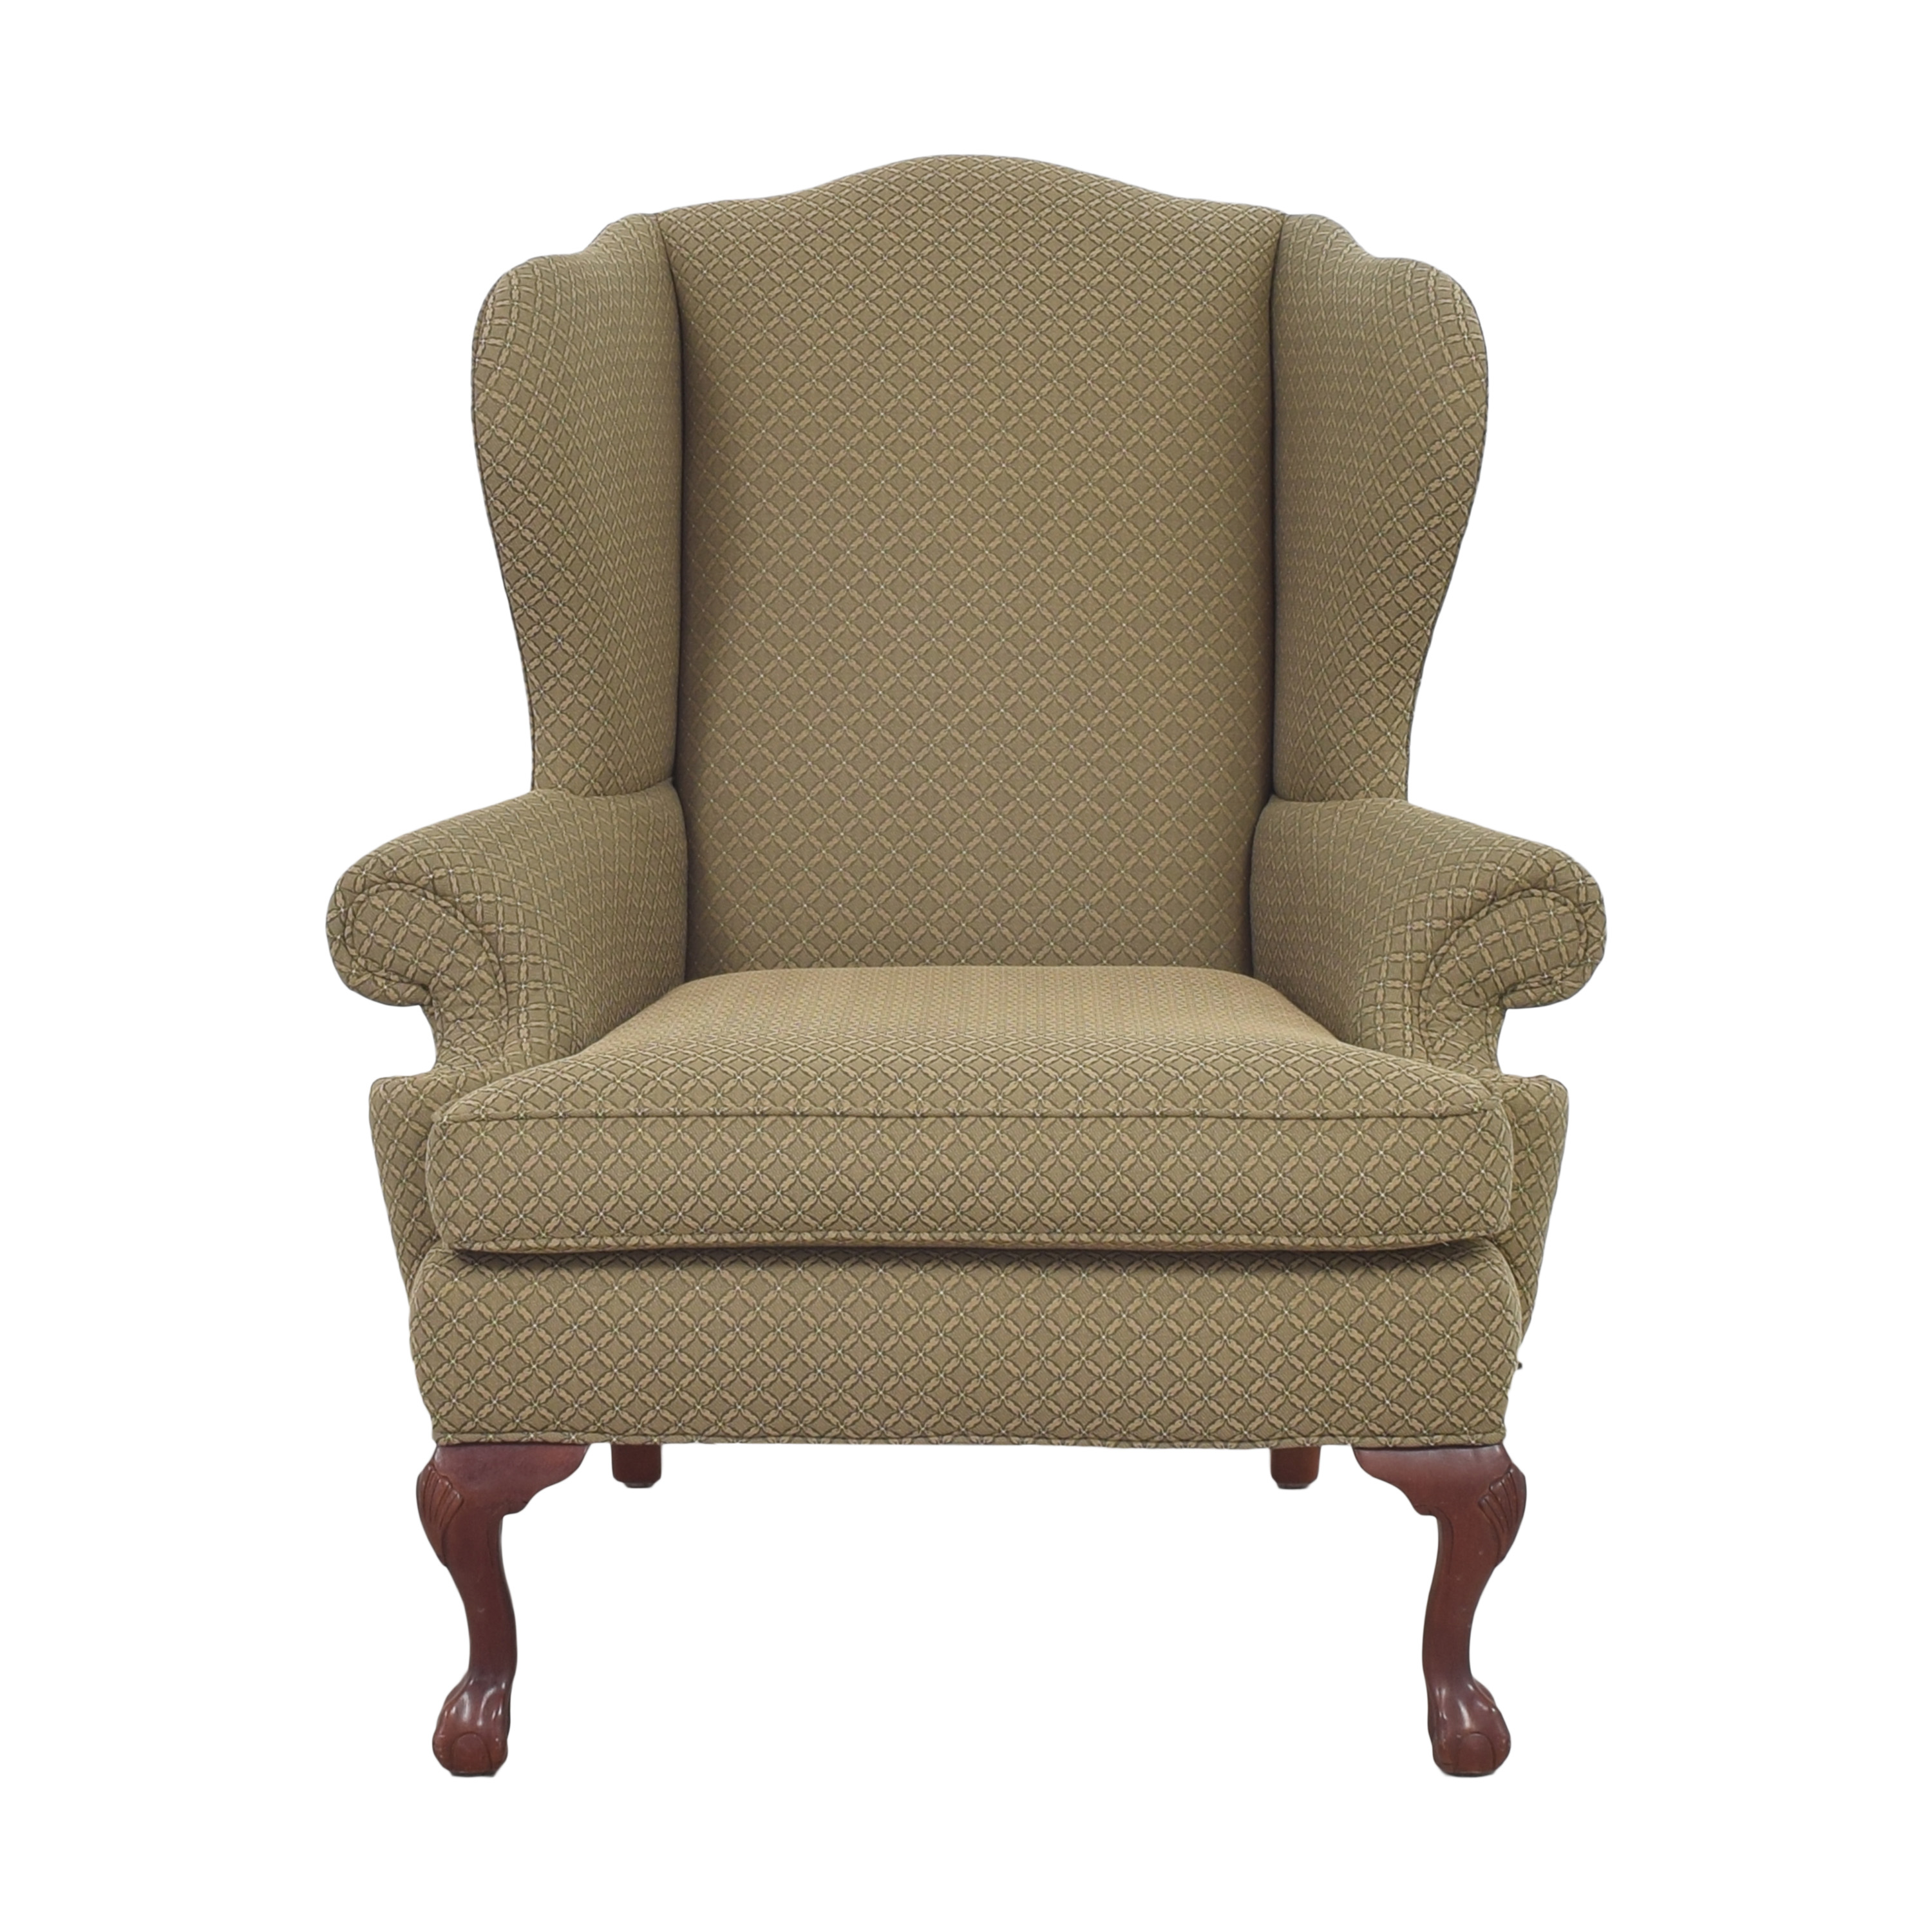 Ethan Allen Giles Chair / Accent Chairs